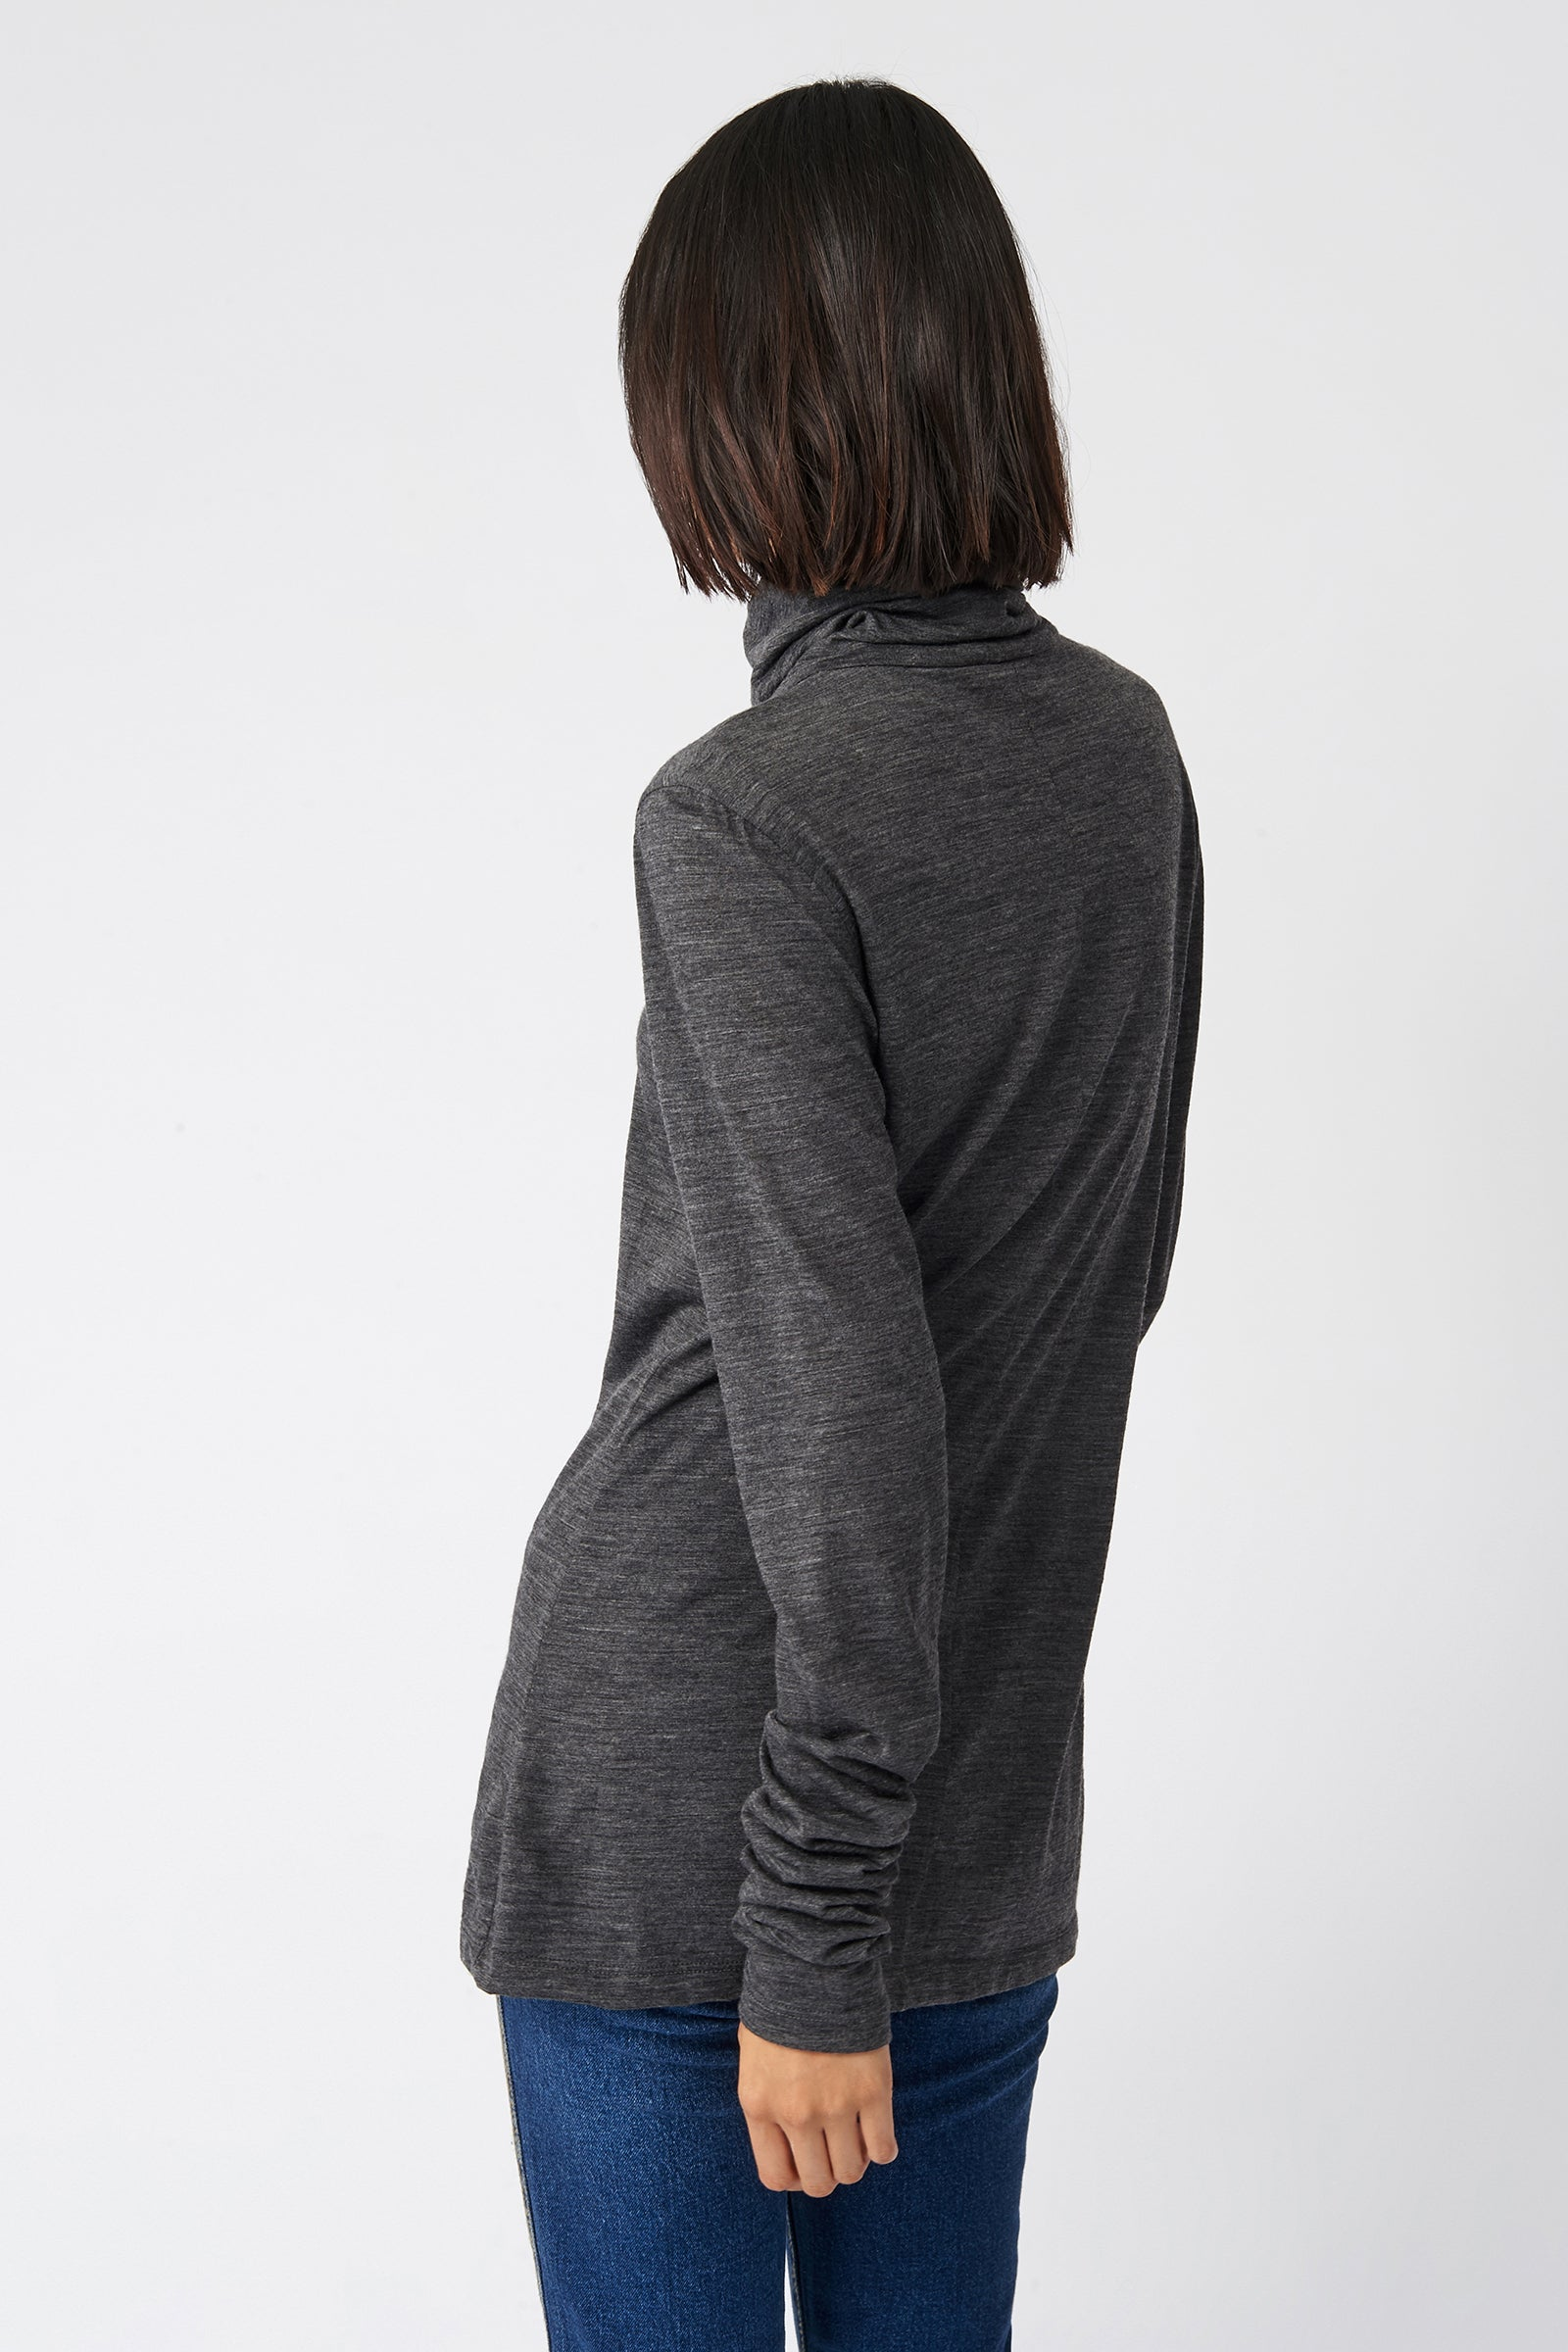 Kal Rieman Fitted Turtleneck in Charcoal on Model Front View